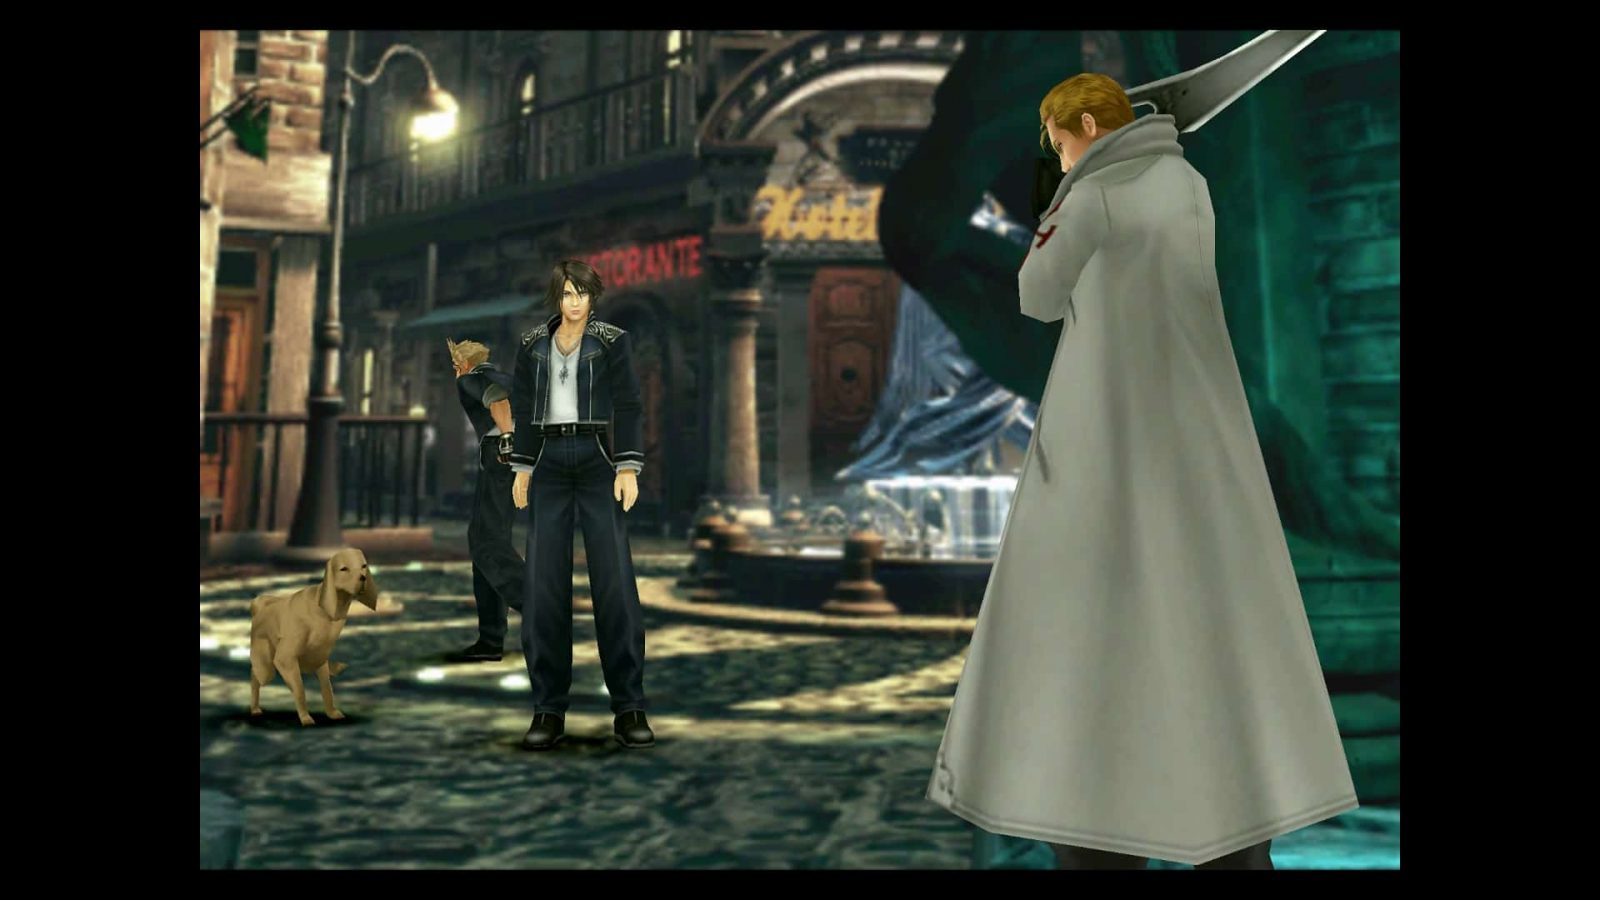 An image showing gameplay from Final Fantasy 8